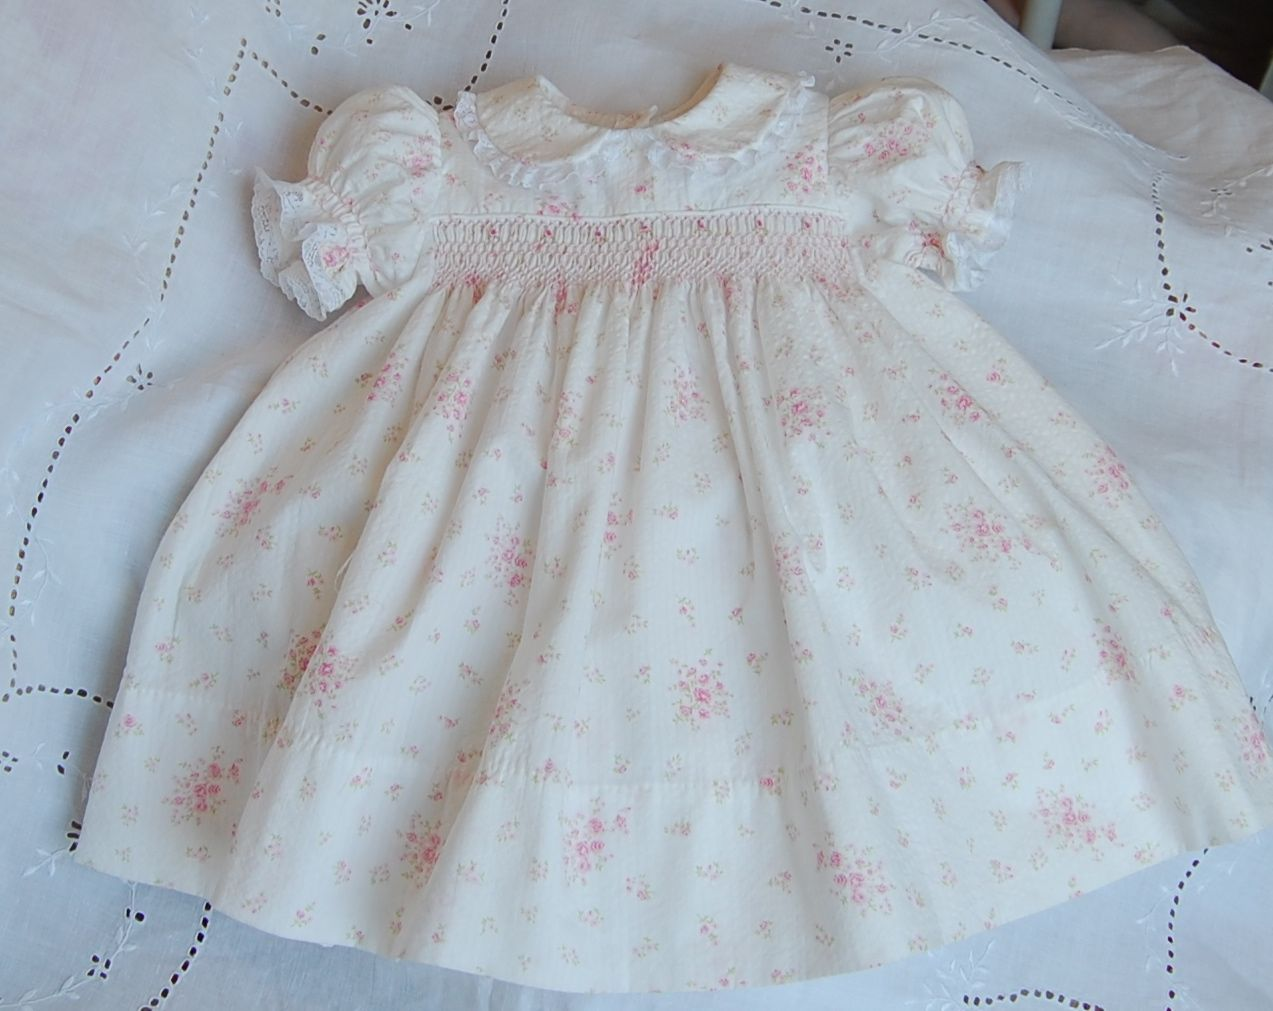 17 Best ideas about Smocked Baby Dresses on Pinterest | Smocking ...